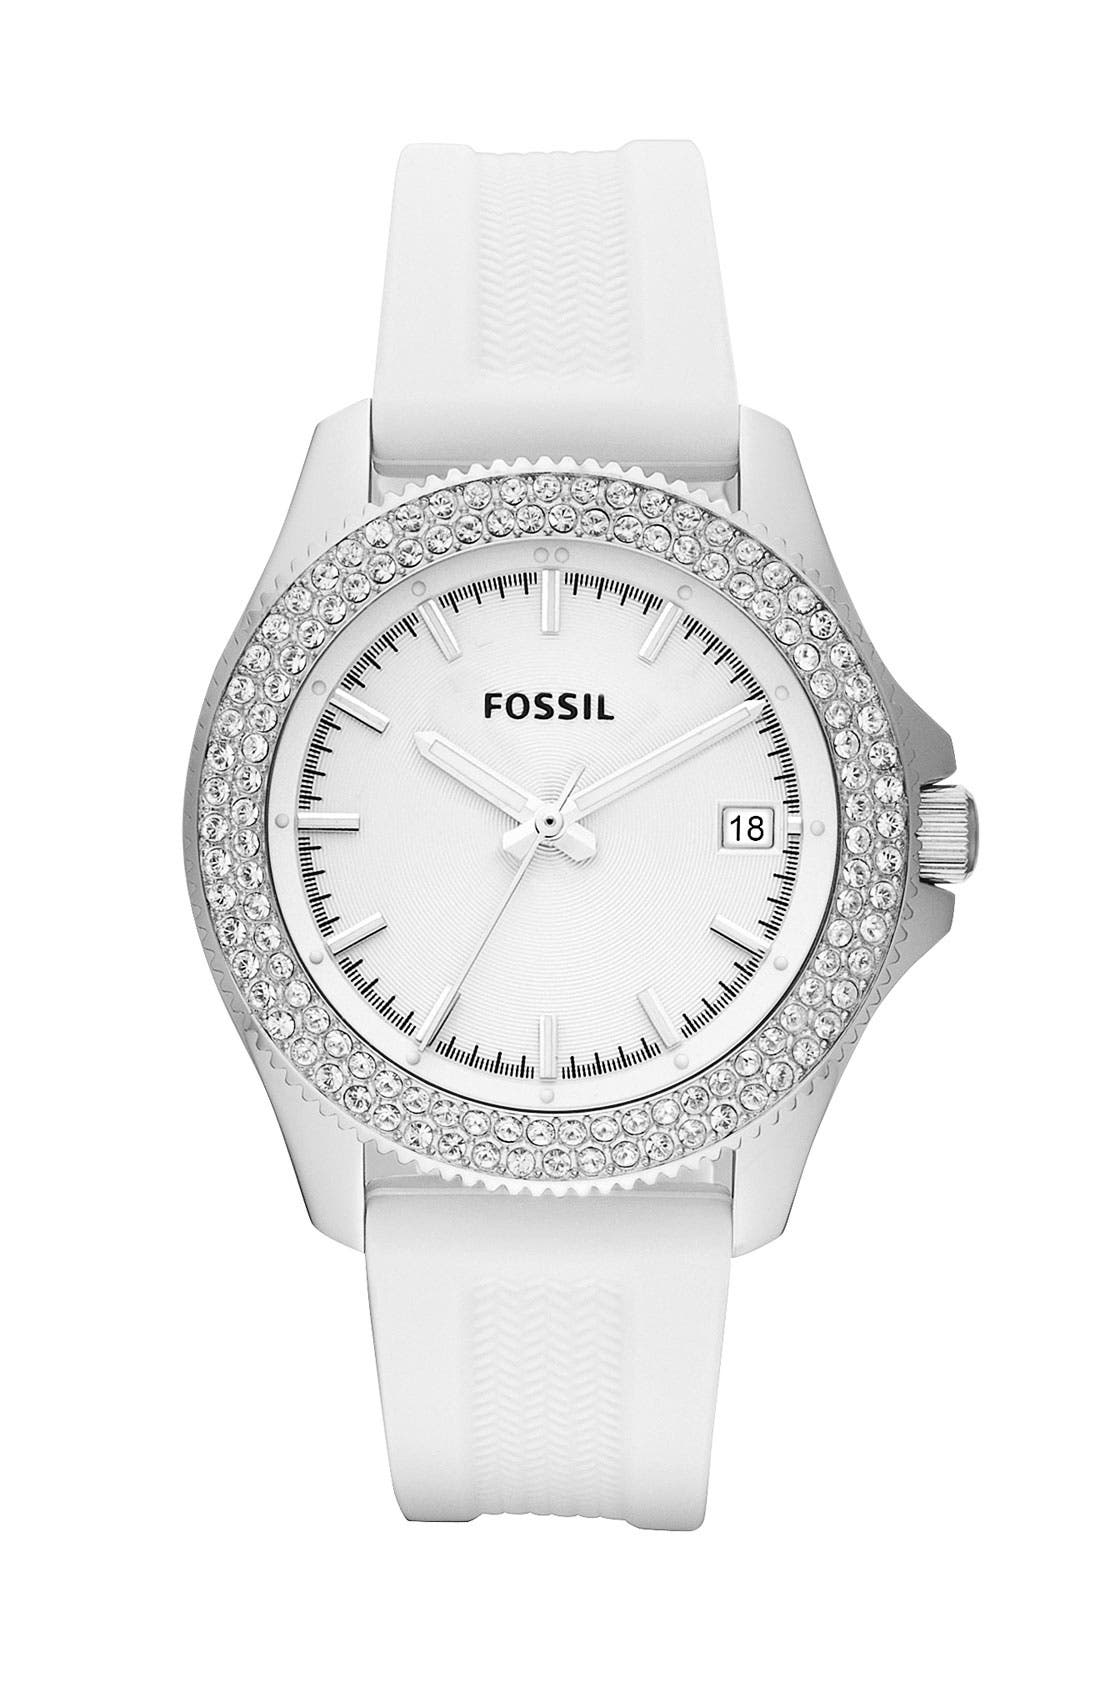 Main Image - Fossil 'Retro Traveler' Crystal Bezel Watch, 36mm